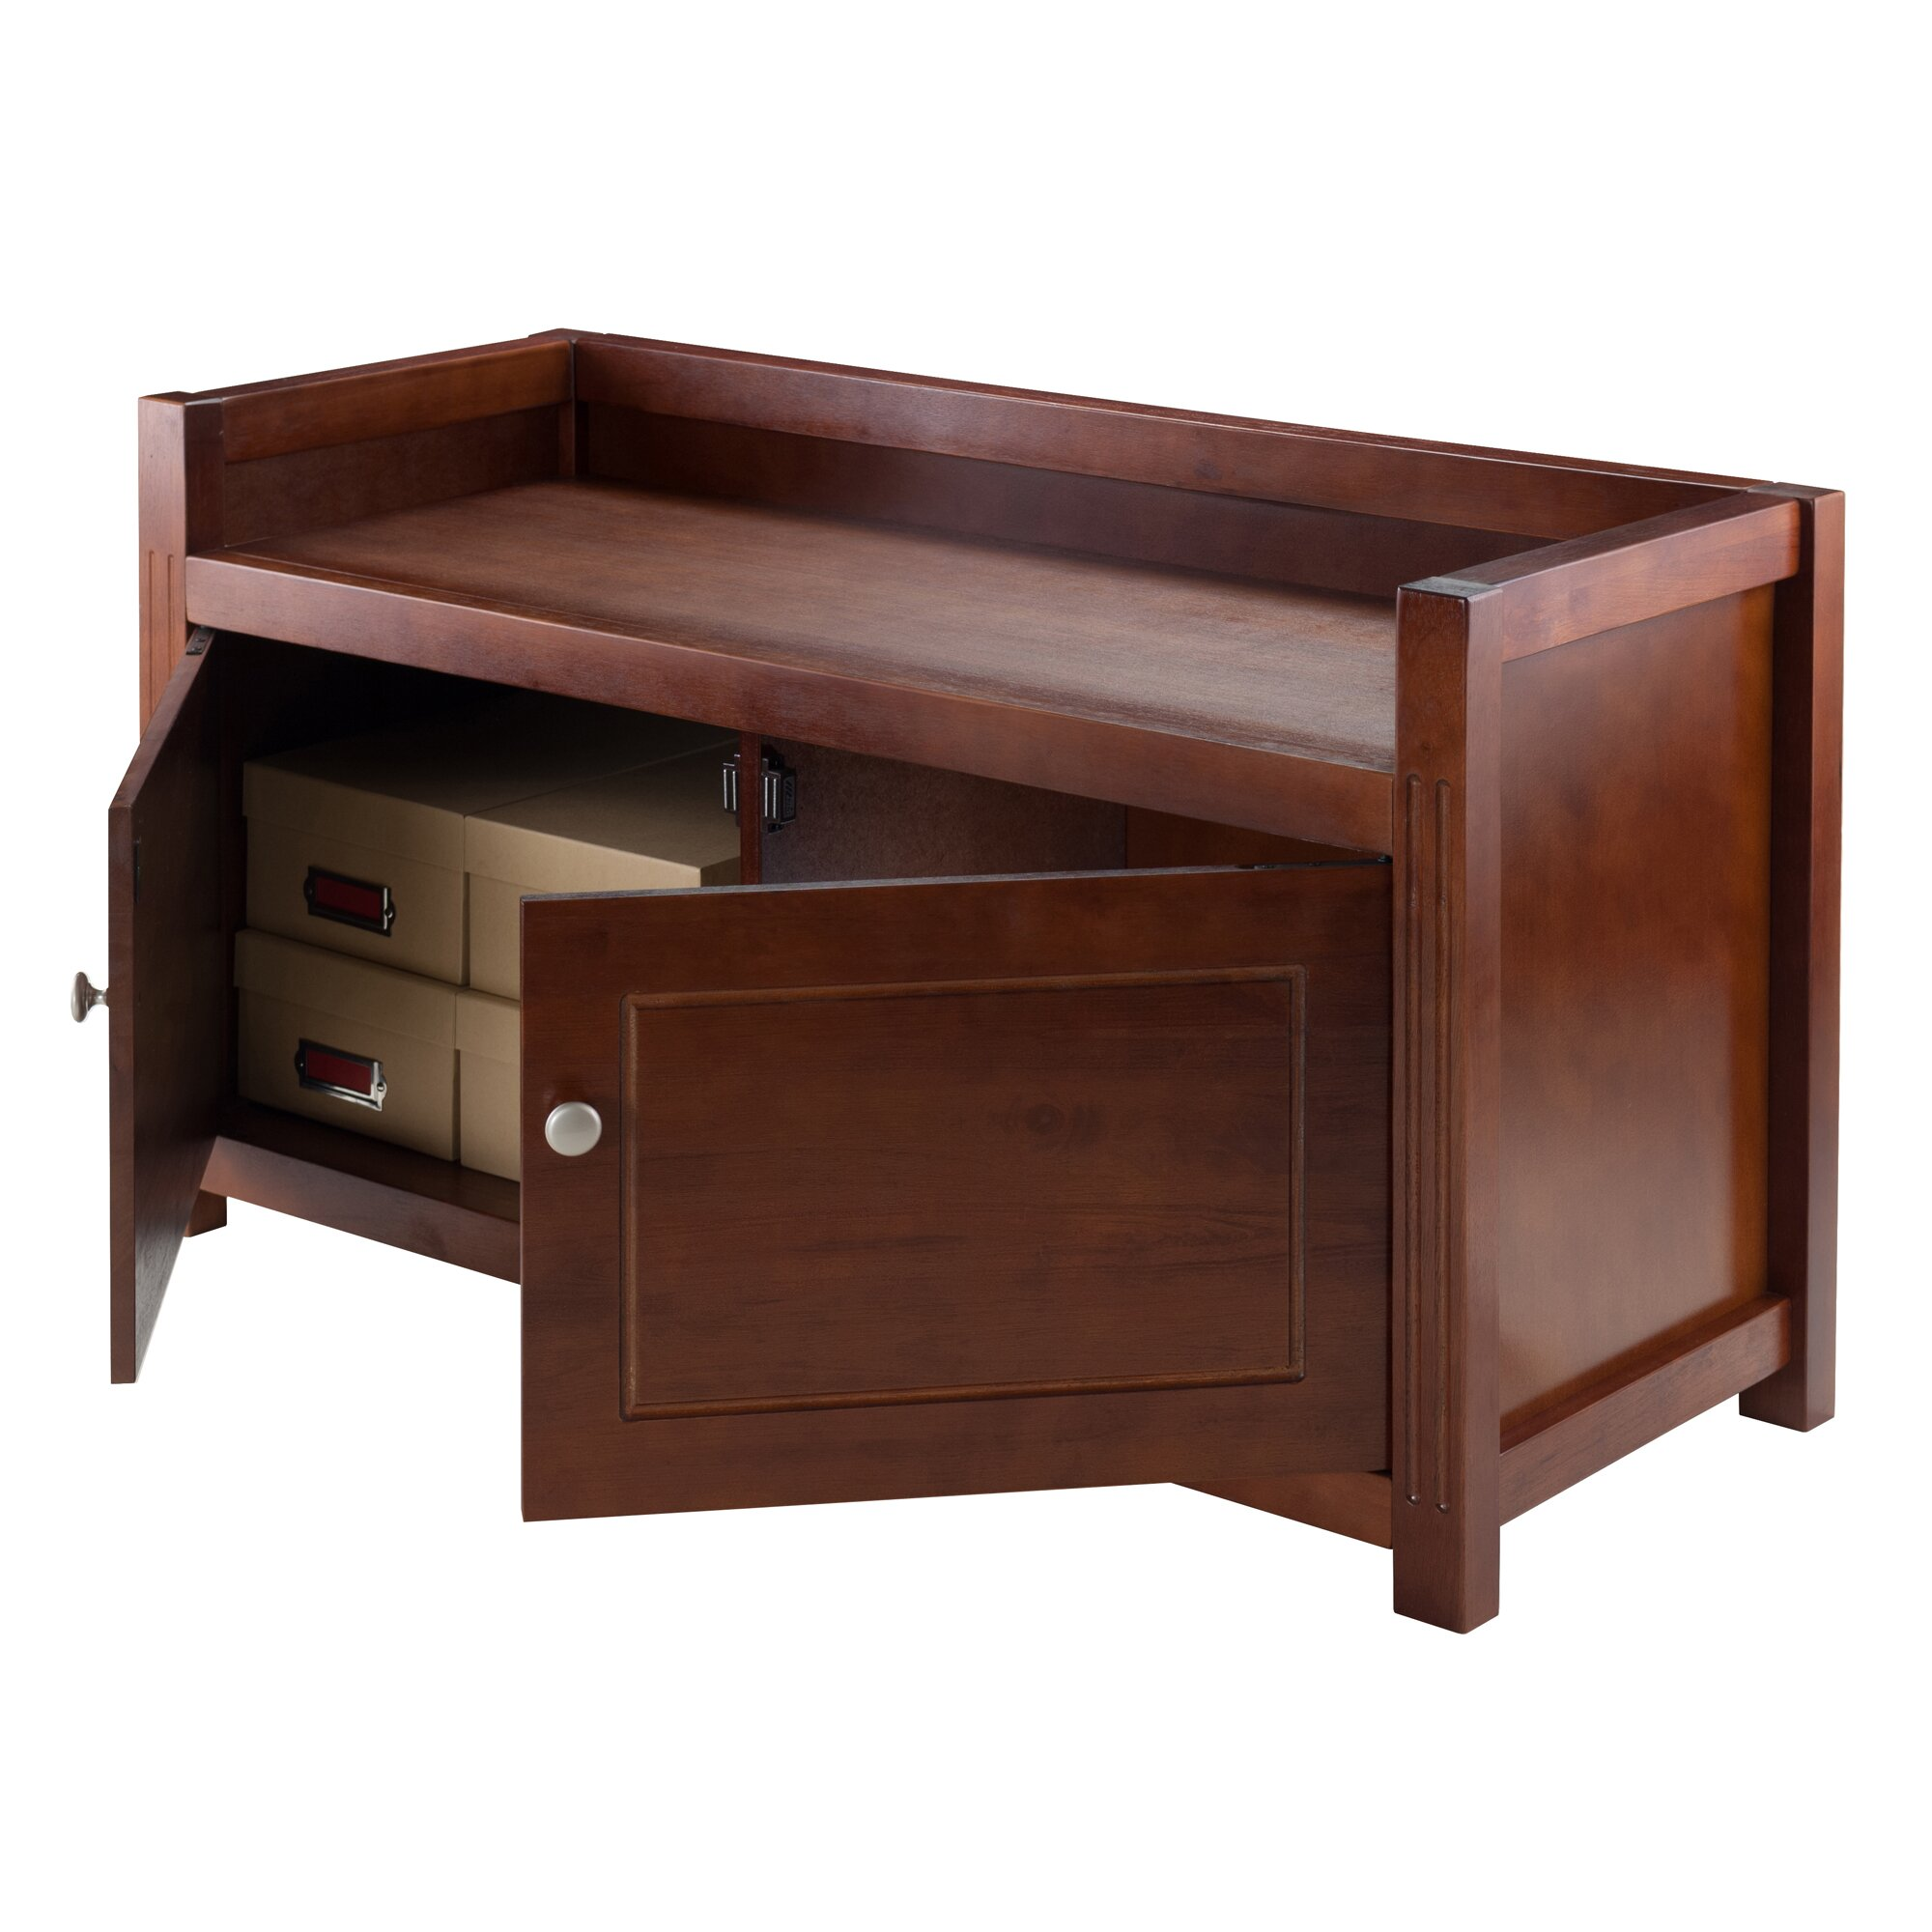 Winsome Wooden Storage Bench Reviews